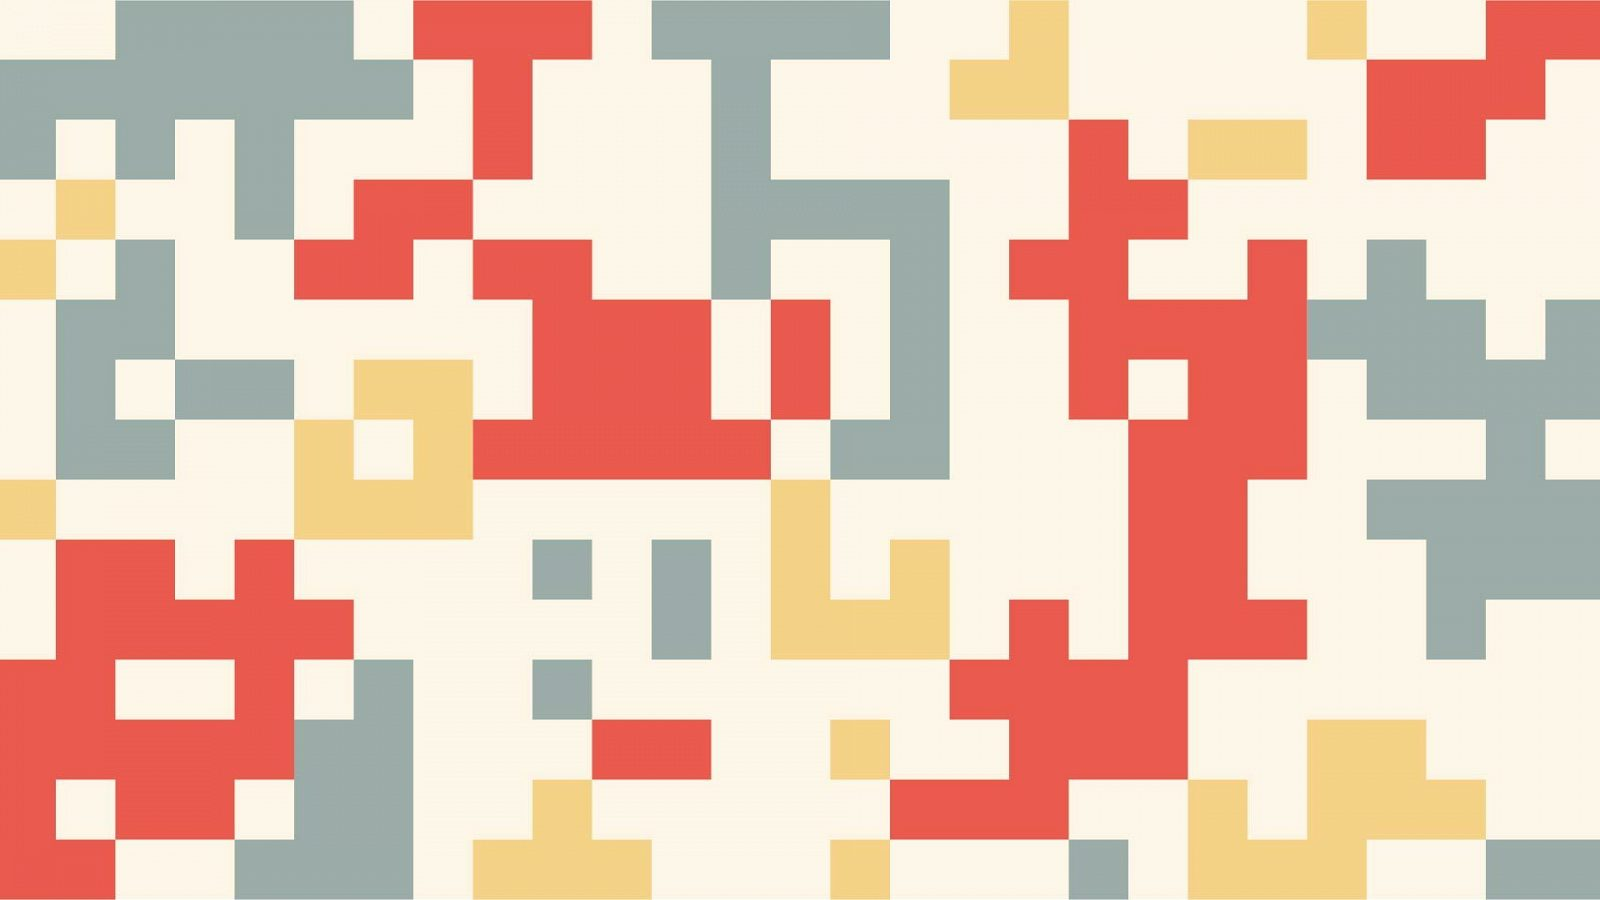 QR code-like grid in Well Done blue, red, and yellow